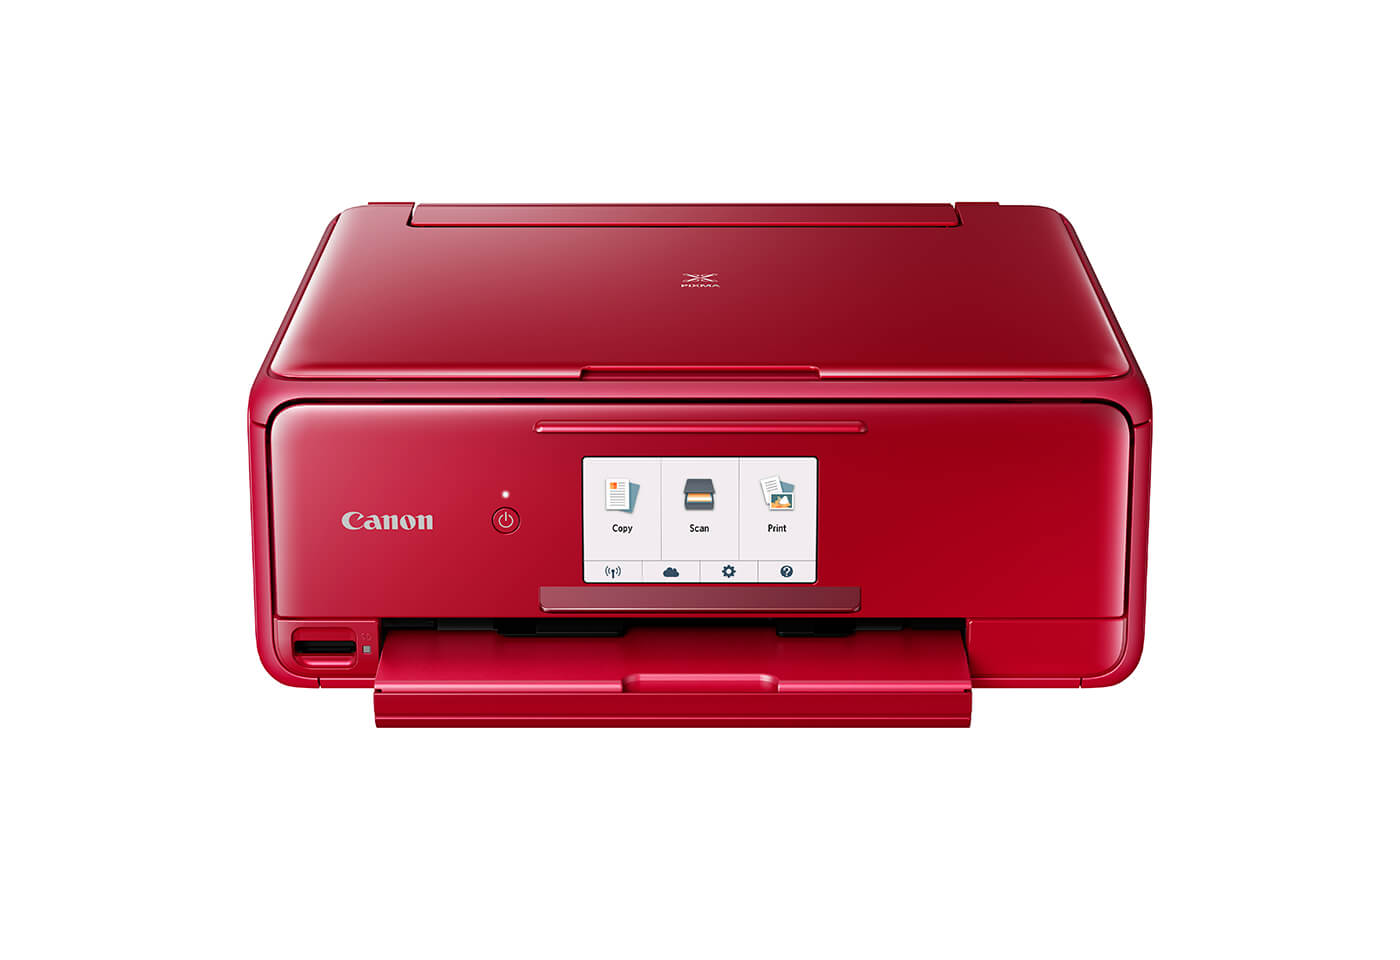 TS8160 red product image